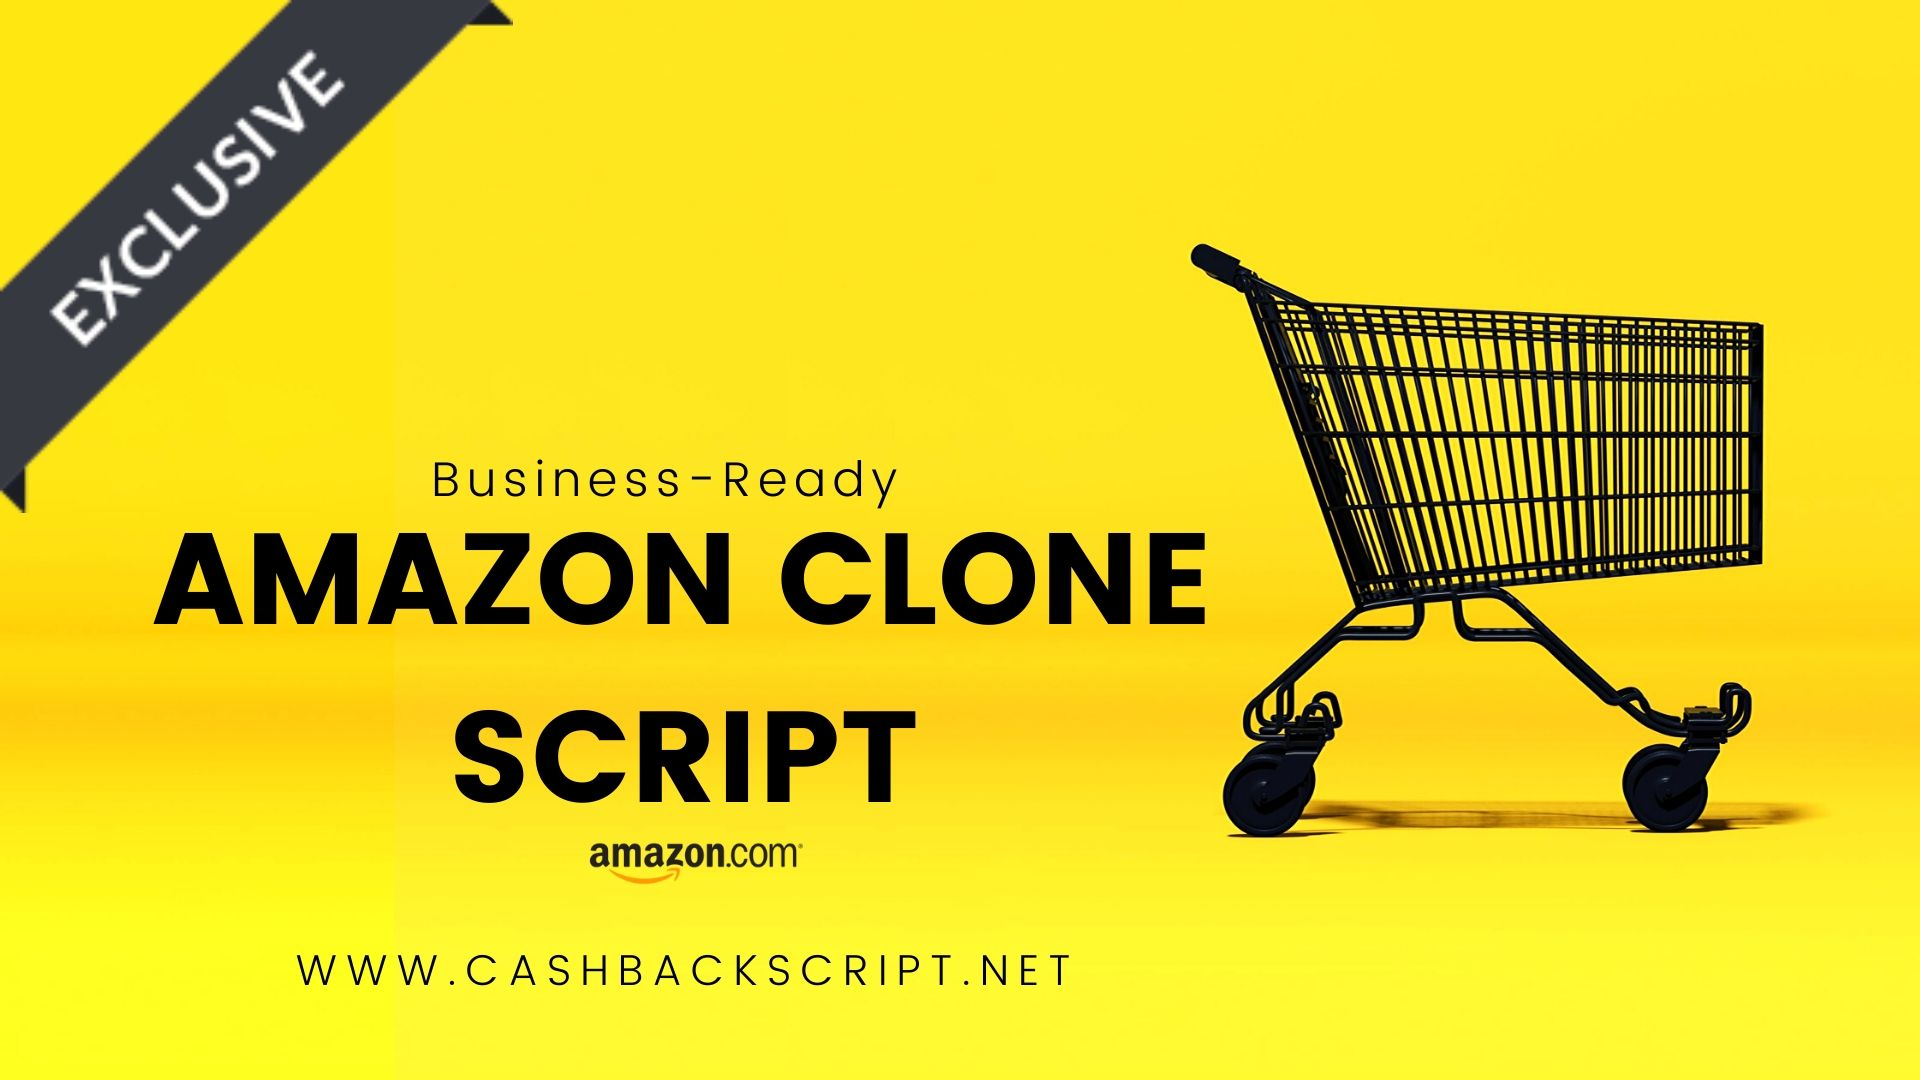 Amazon Clone Script to Start your Own Multi-Vendor E-commerce Website like Amazon